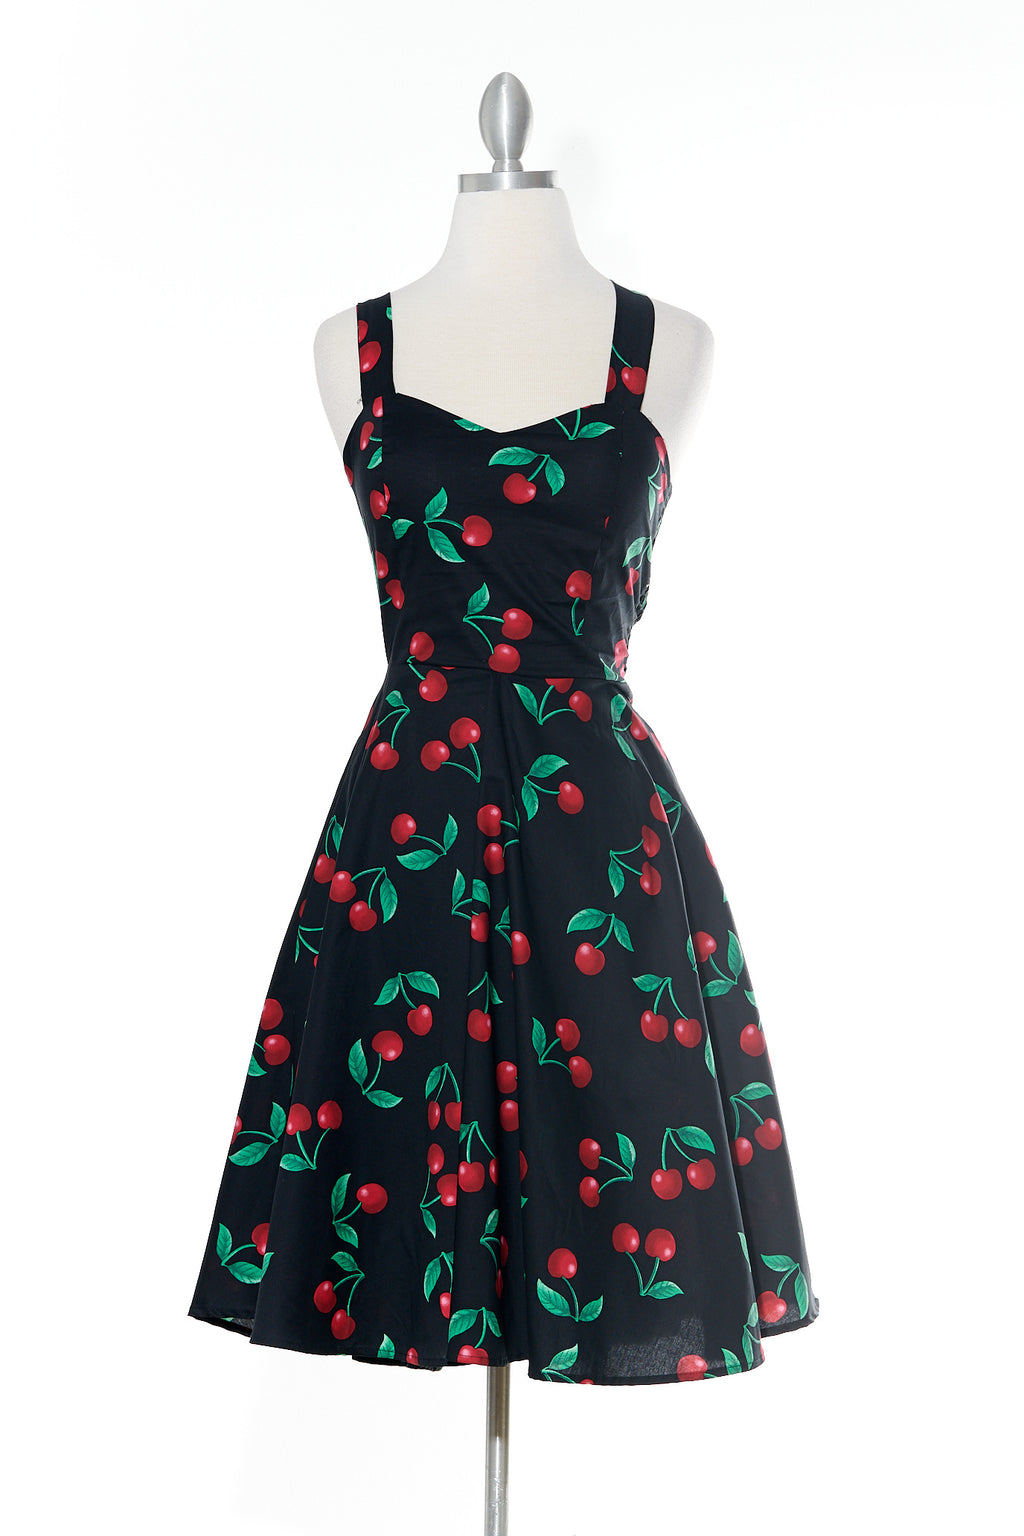 Cherry Pie Black Dress